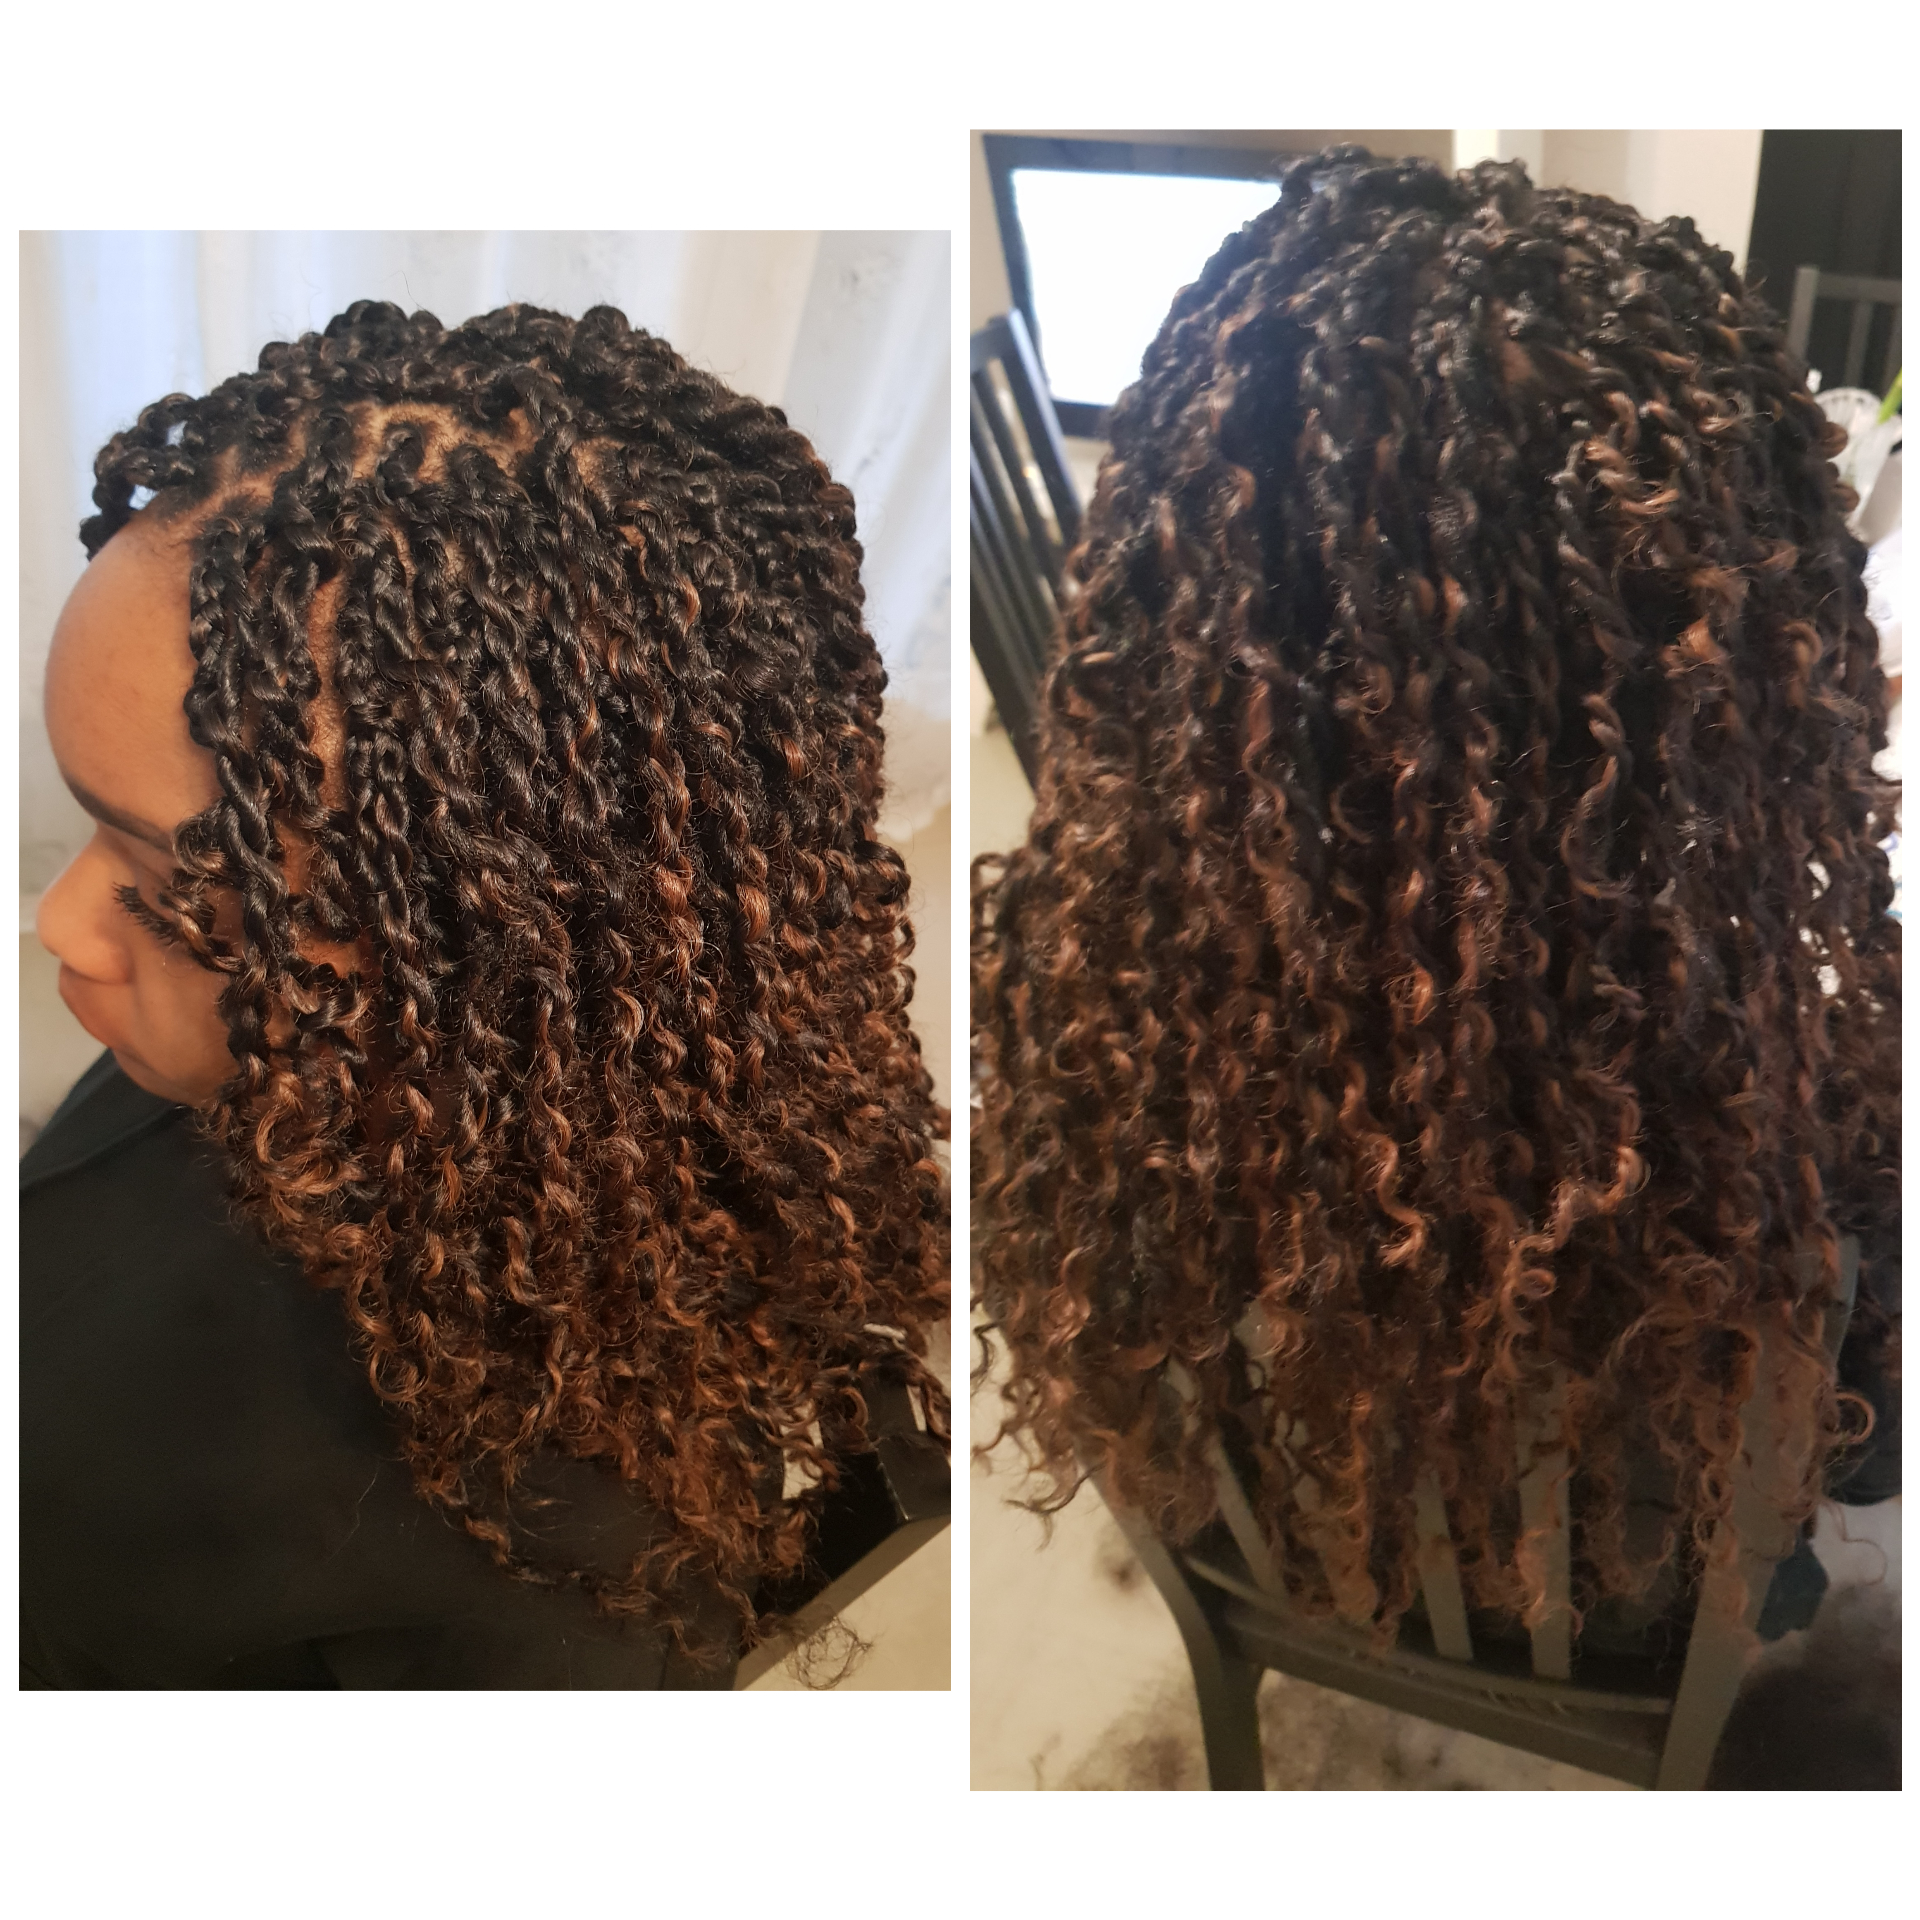 salon de coiffure afro tresse tresses box braids crochet braids vanilles tissages paris 75 77 78 91 92 93 94 95 AJTVGUEV